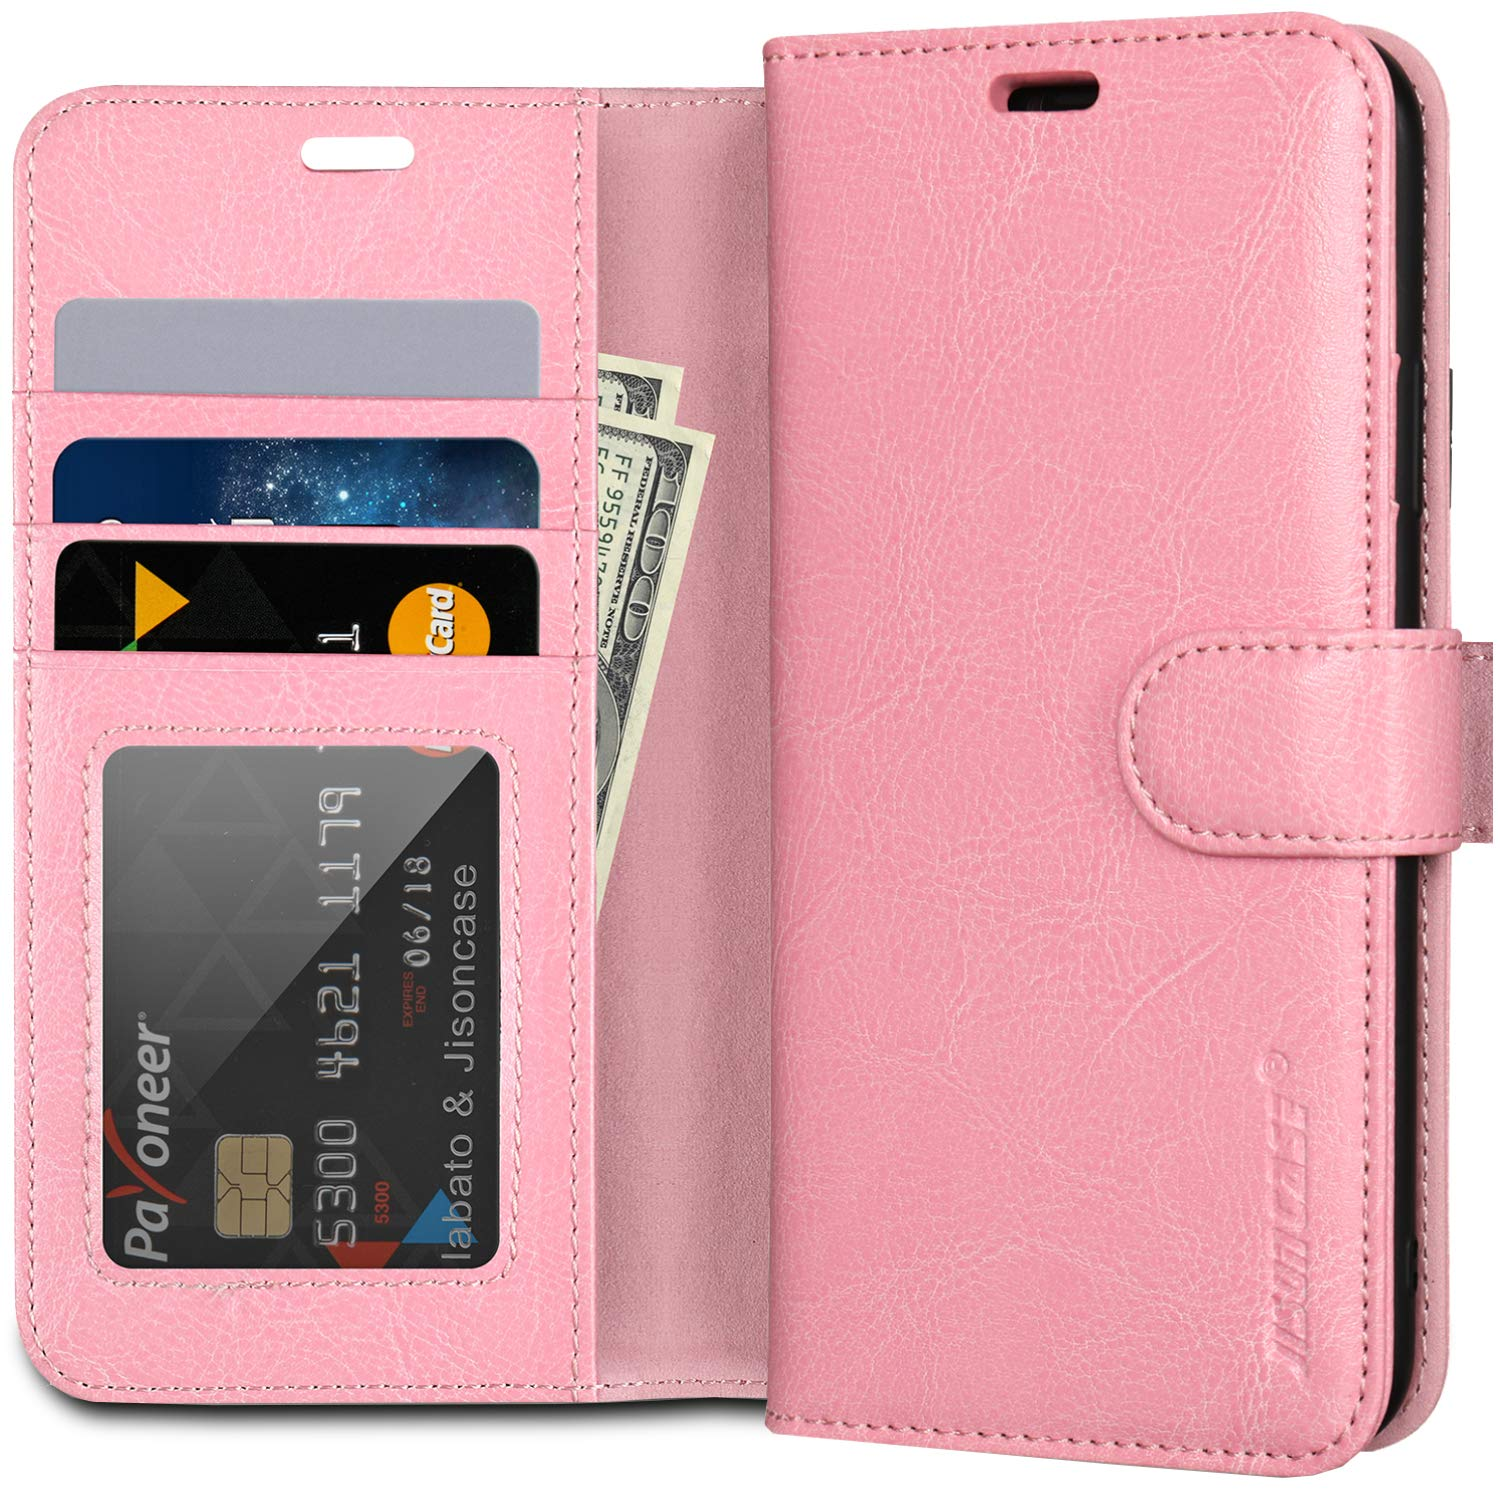 """JISCONCASE Genuine Leather iPhone 11 Pro Max Wallet Case, Flip Case iPhone 11 Pro Max with Card Holder,Wireless Charging & Magnetic Closure Wallet Cover for iPhone 11 Pro Max,Pink 6.5"""""""